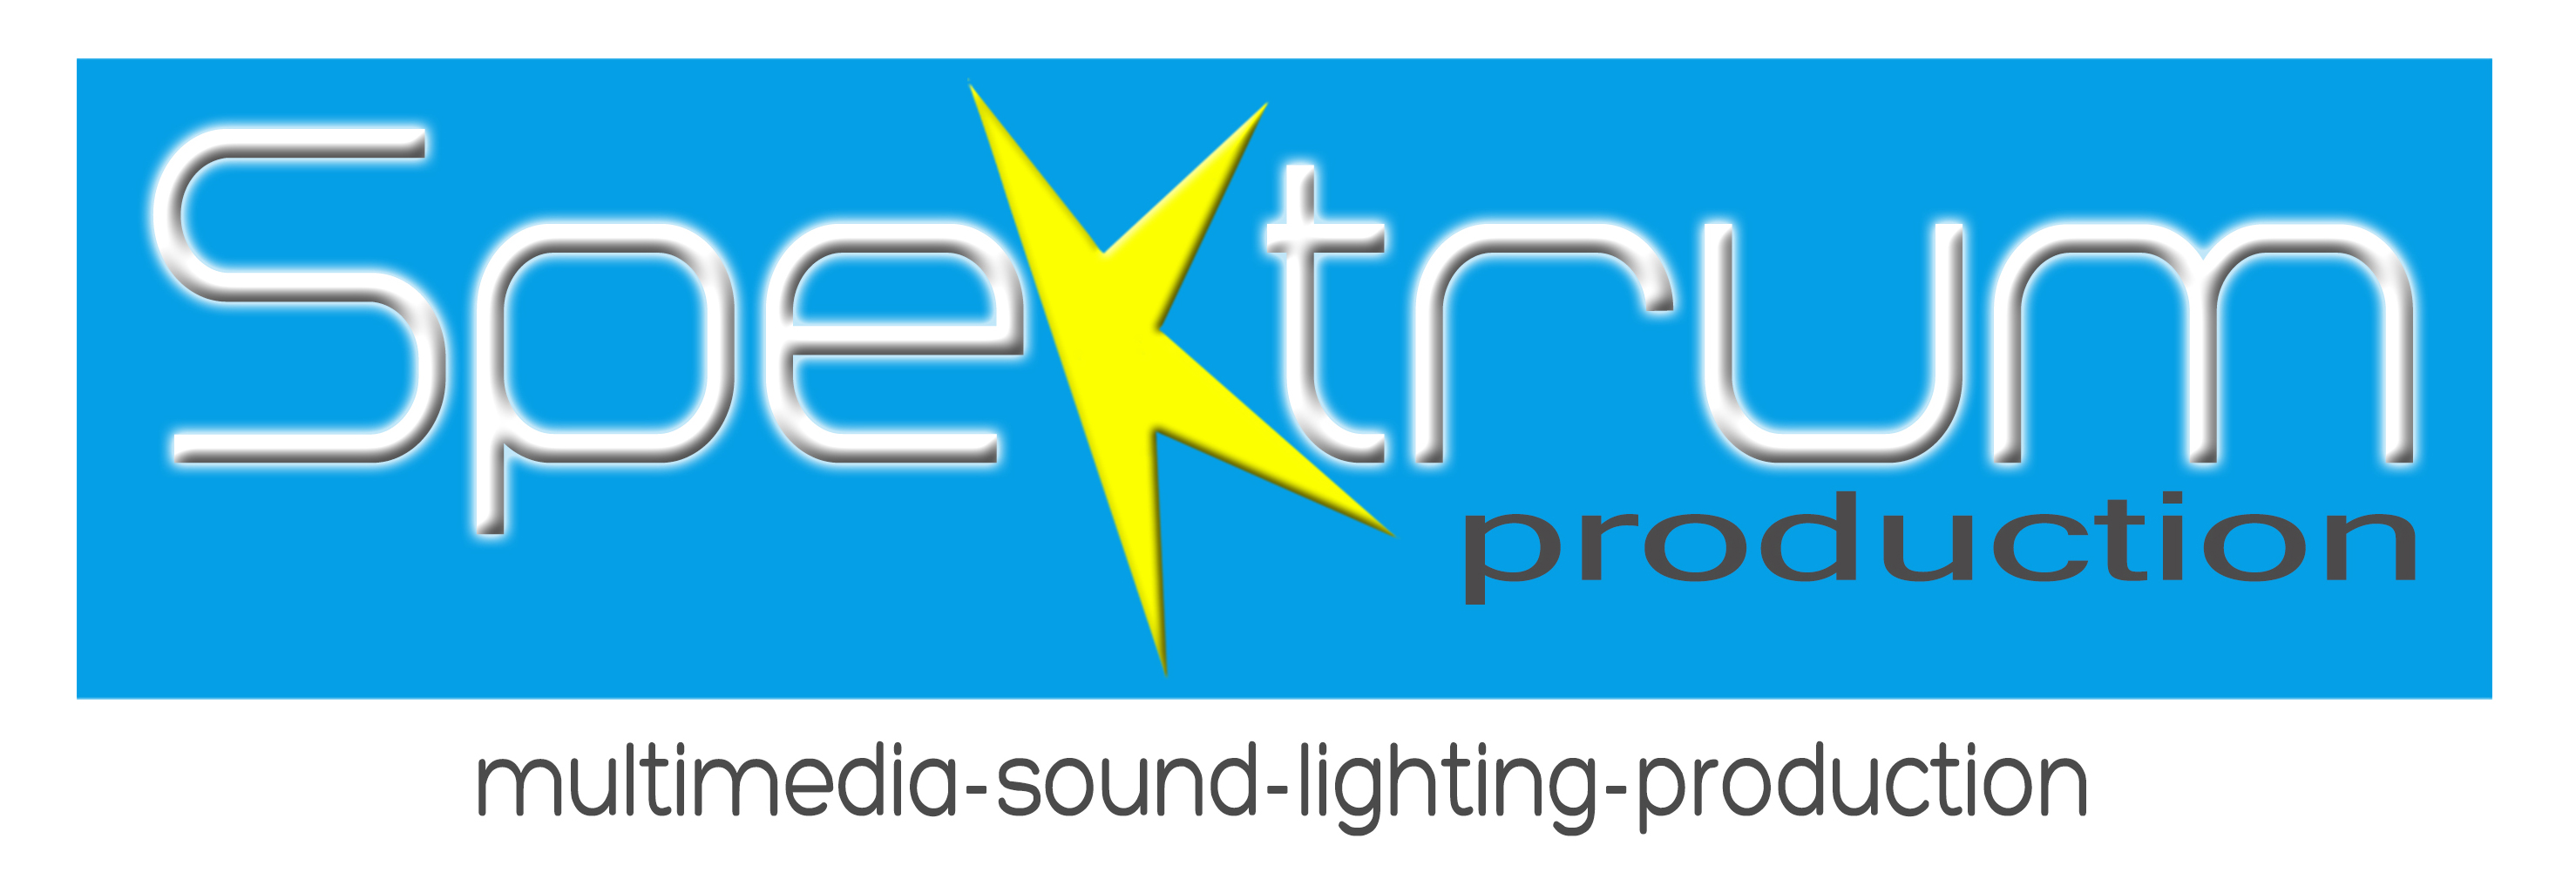 Spektrum Production